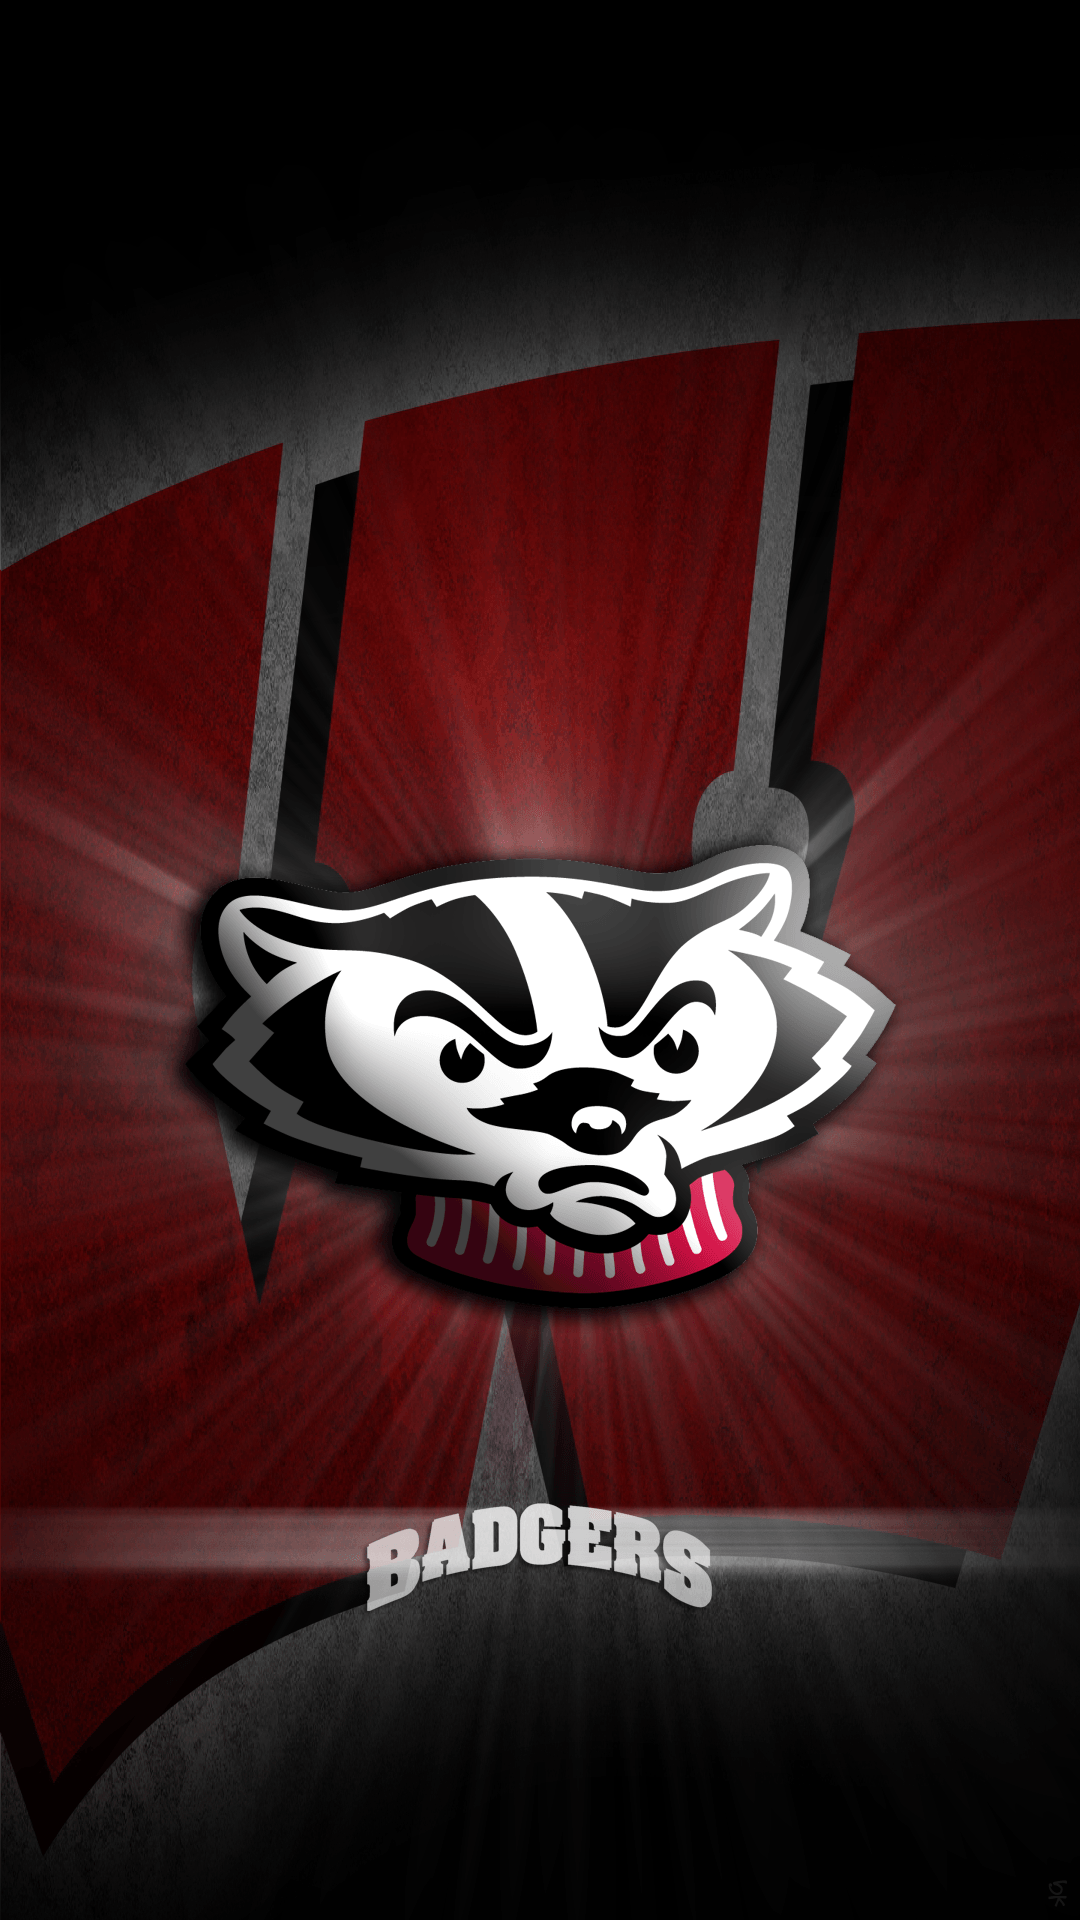 Wisconsin Badgers Wallpaper For Android | Wallpaper for Mobile